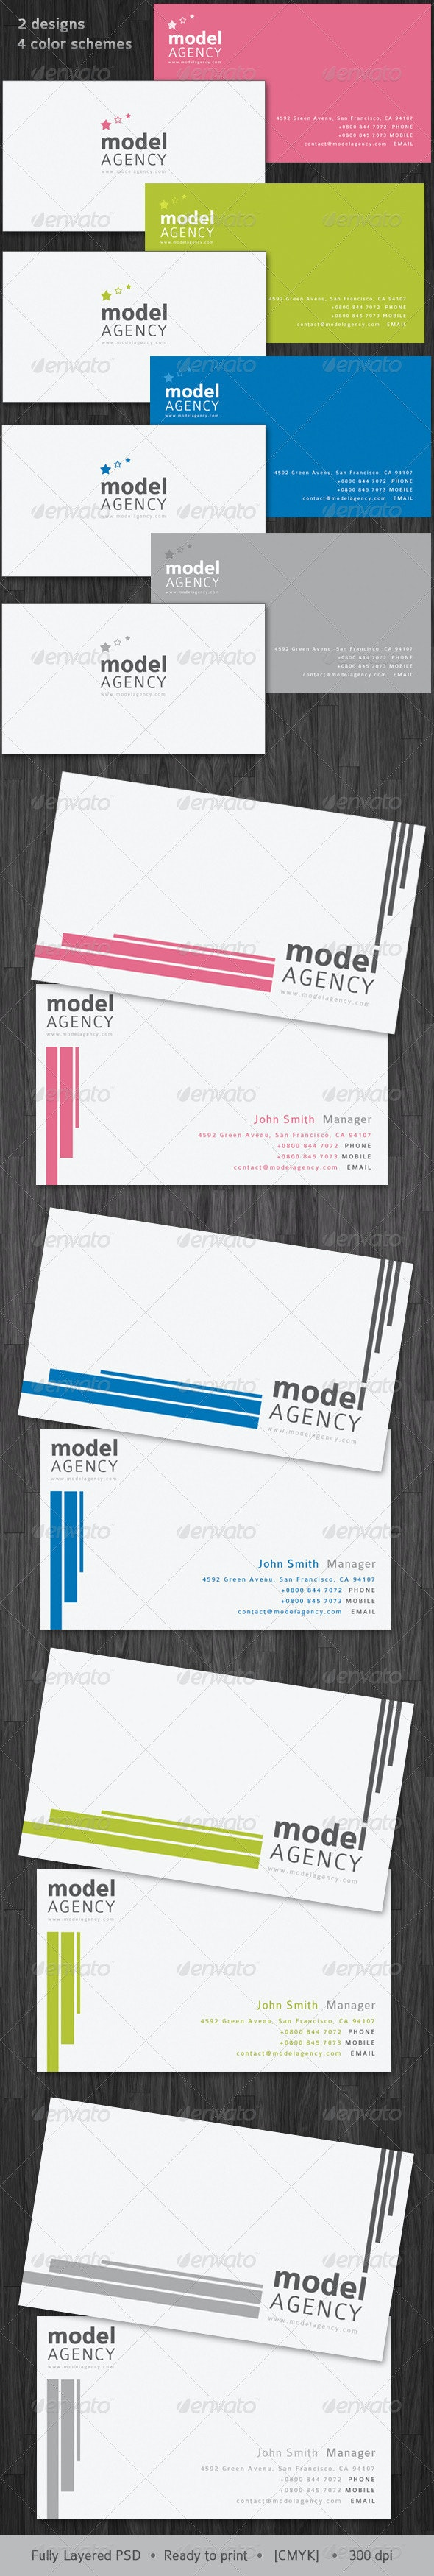 Model Agency x2 designs - x4 schemes Modern&Clean! - Corporate Business Cards